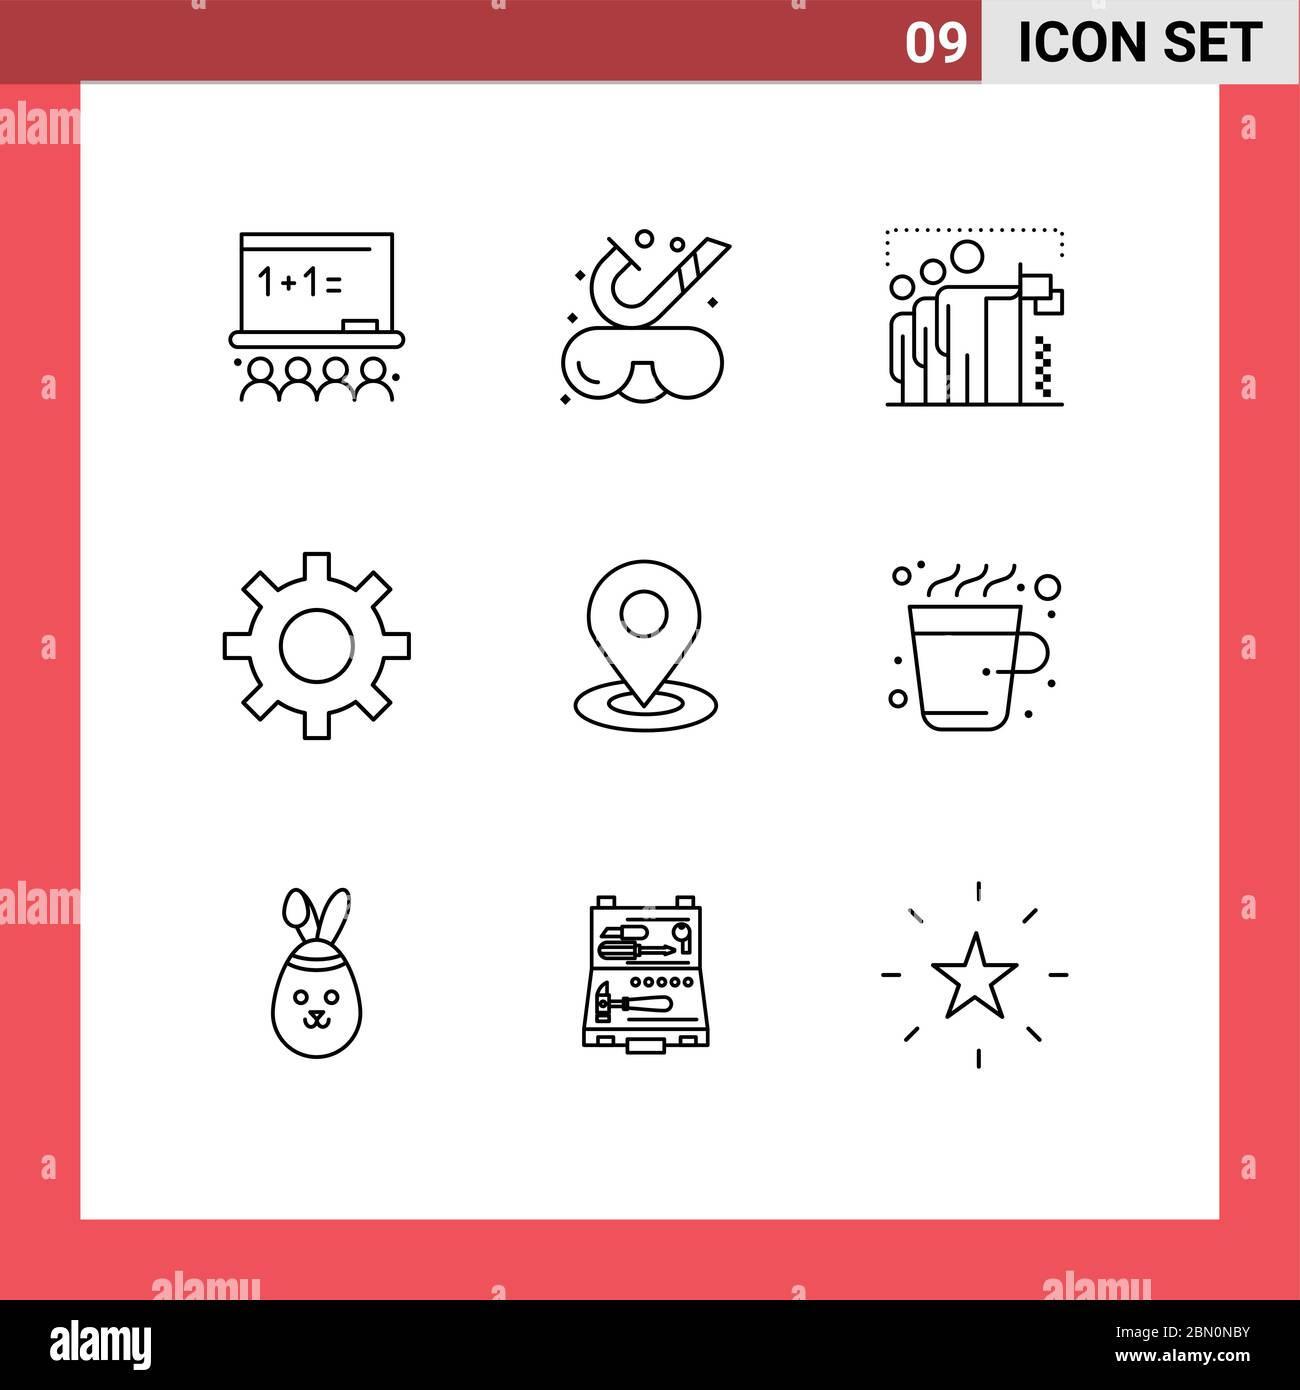 9 Universal Outlines Set for Web and Mobile Applications map, gear, flag, security, position Editable Vector Design Elements Stock Vector